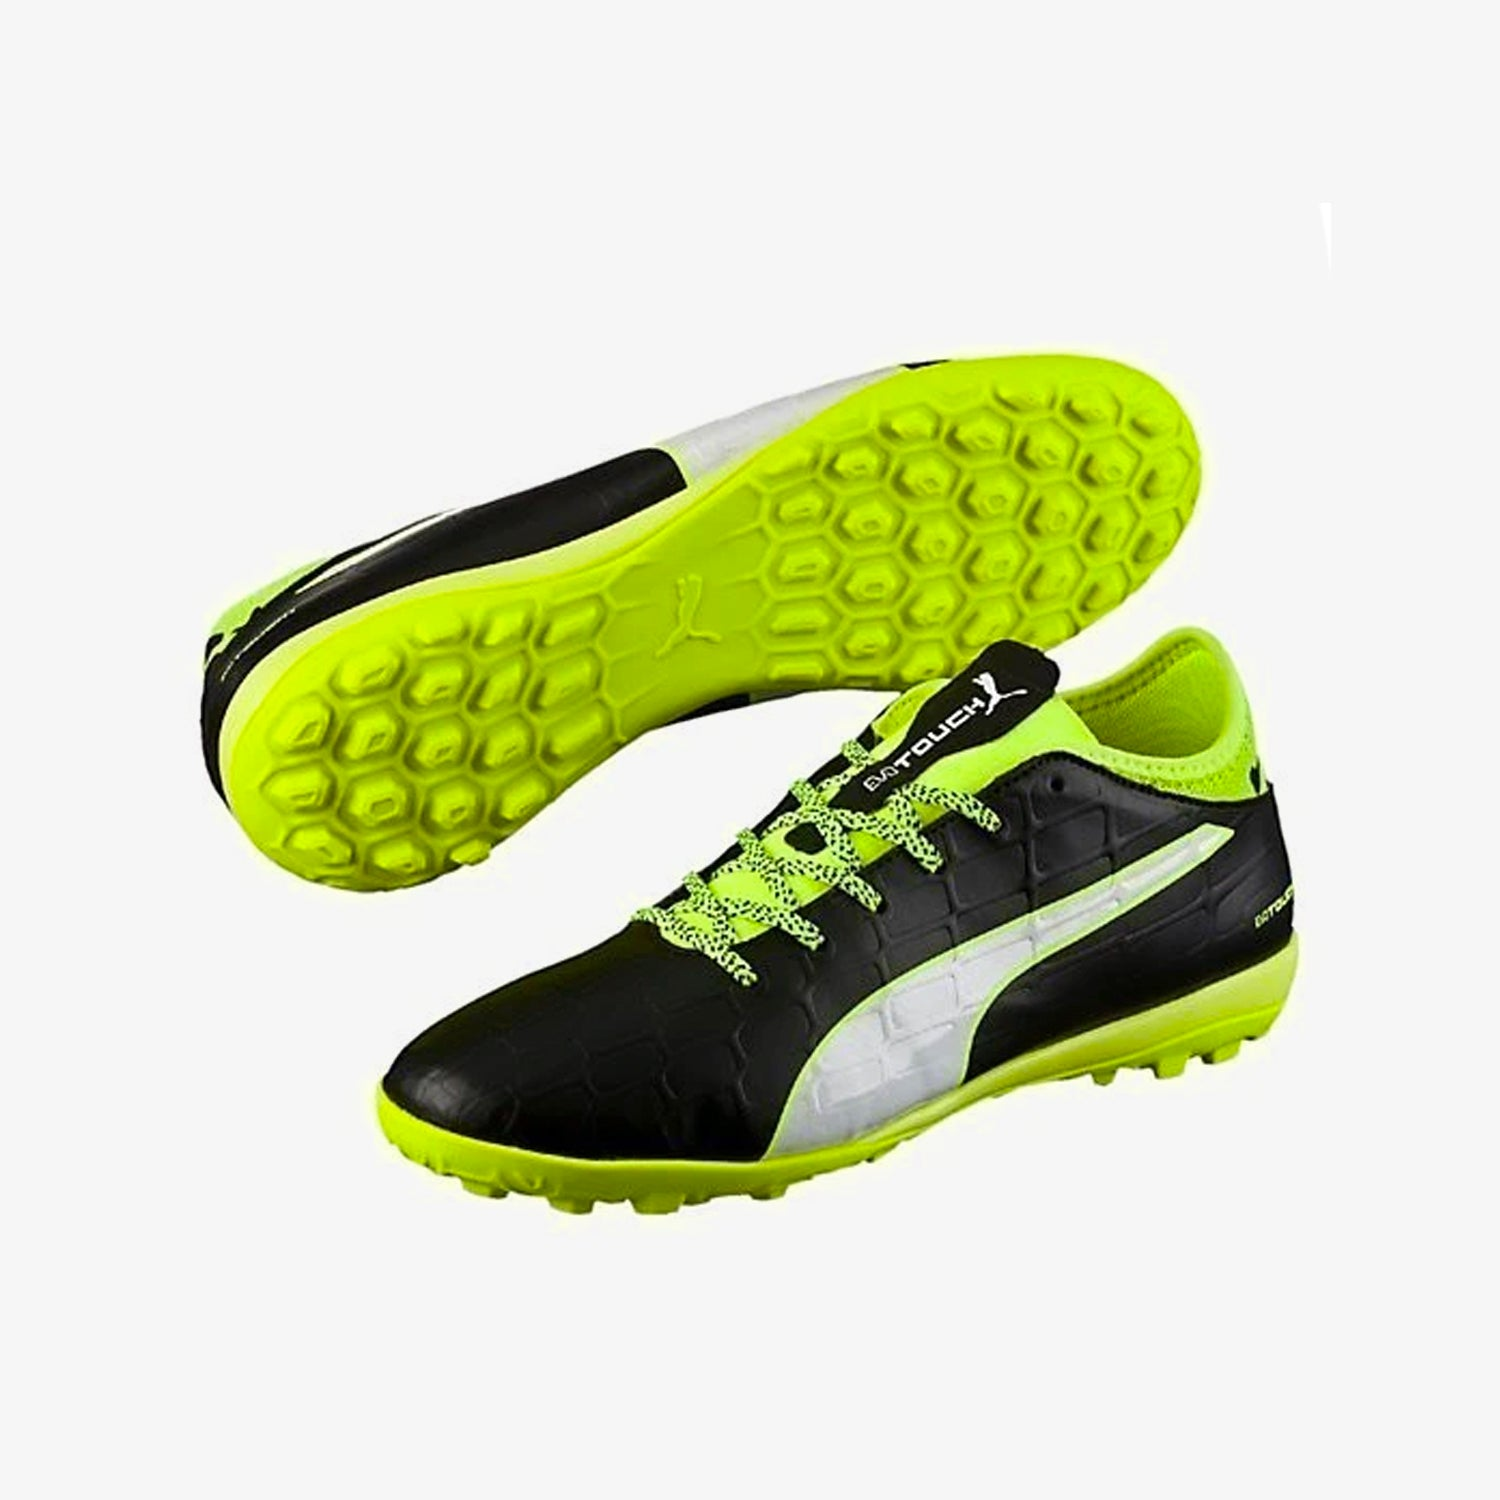 Kid's evoTouch 3 Turf Soccer Shoes